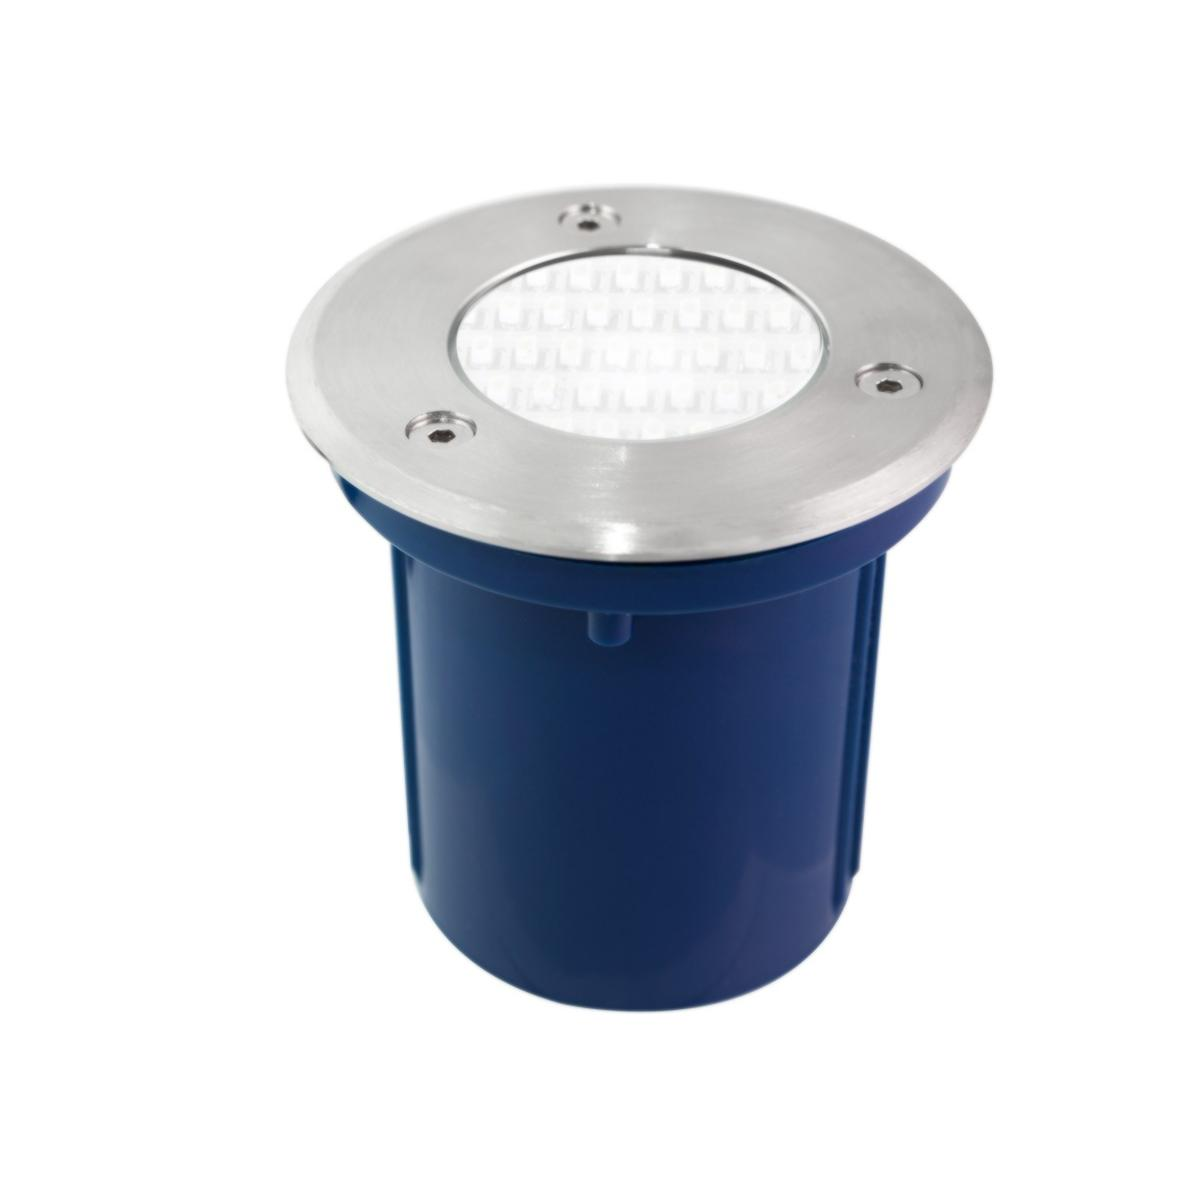 Spot Encastrable Terrasse Beton Spot Led Encastrable Inox 316 Pour Abords Piscine 3w 12v